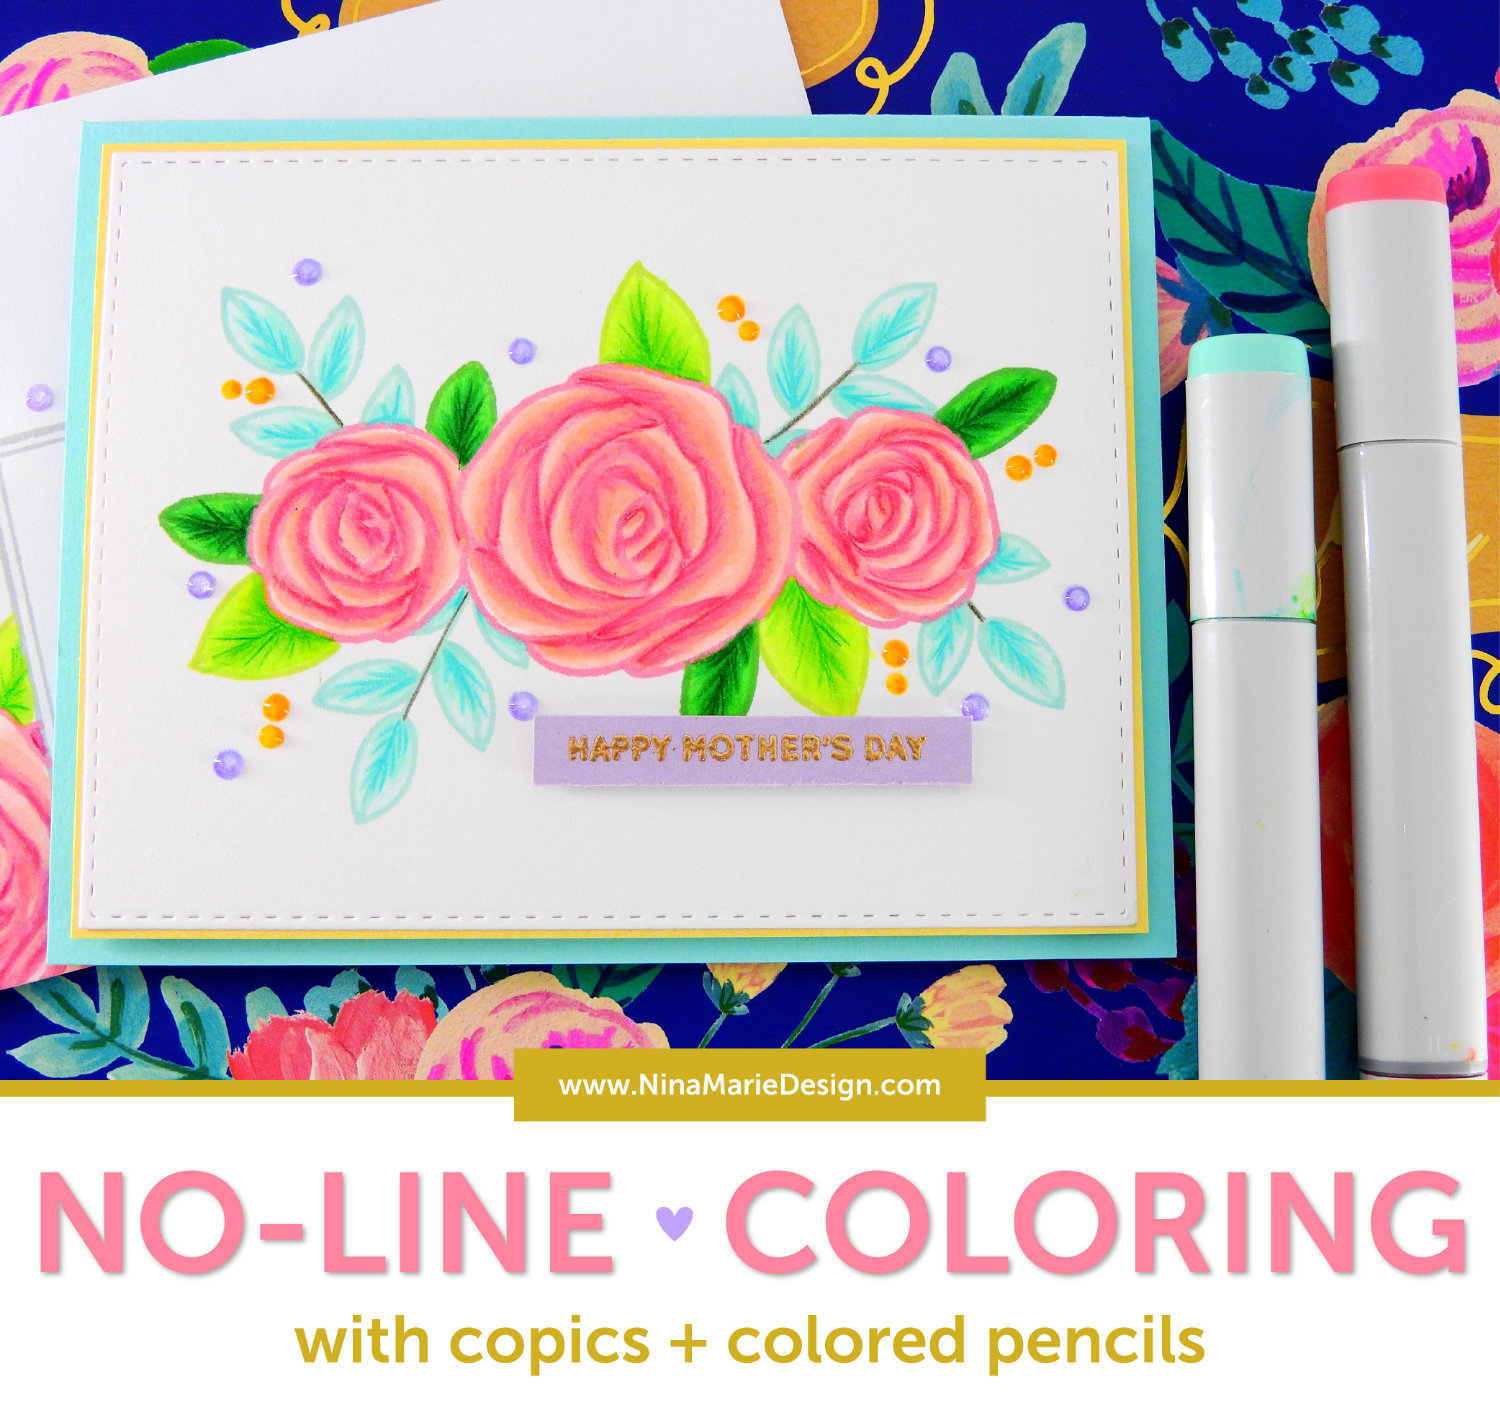 No Line Coloring with Copics and Colored Pencils | Nina-Marie Design